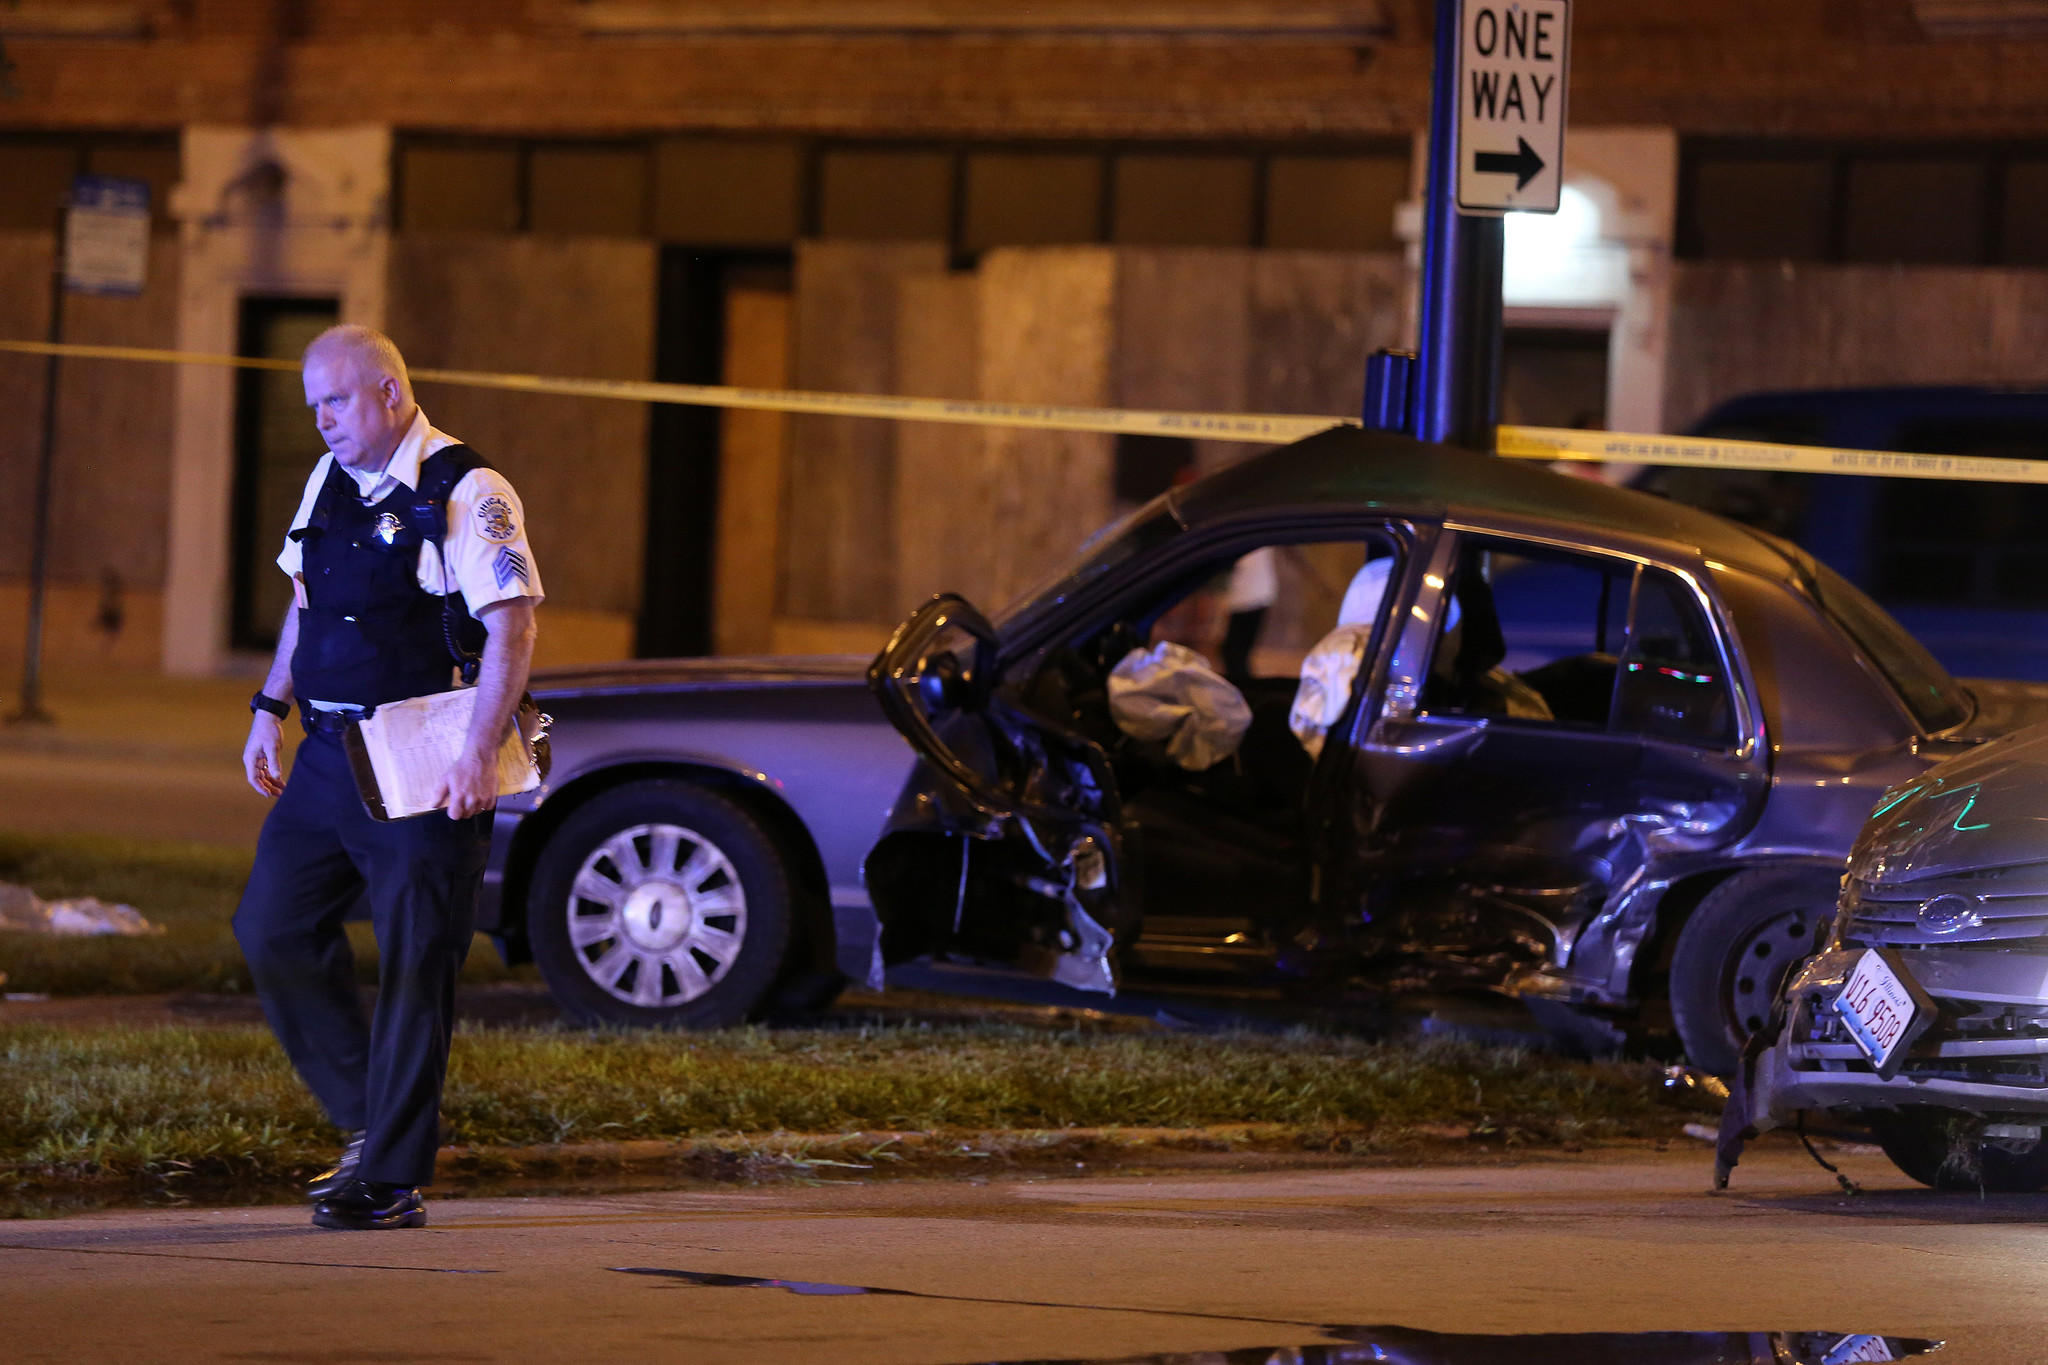 A police officer walks past the wreckage of an unmarked police car after it was involved in a collision with a sedan at the intersection of East Garfield Boulevard and South Indiana Avenue in Chicago.